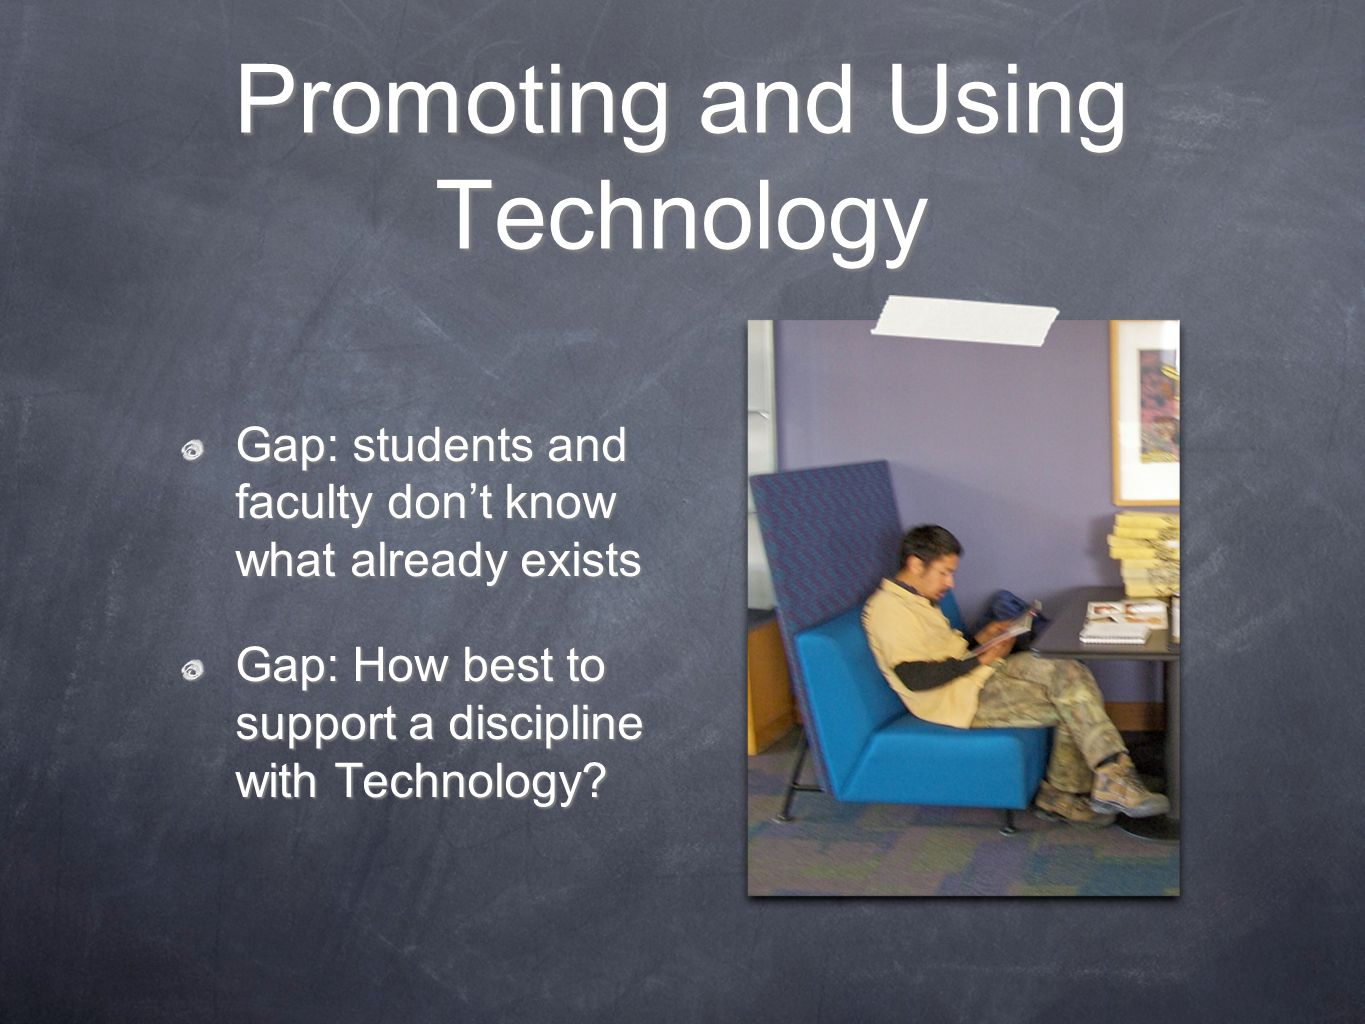 Promoting and Using Technology Gap: students and faculty don't know what already exists Gap: How best to support a discipline with Technology?